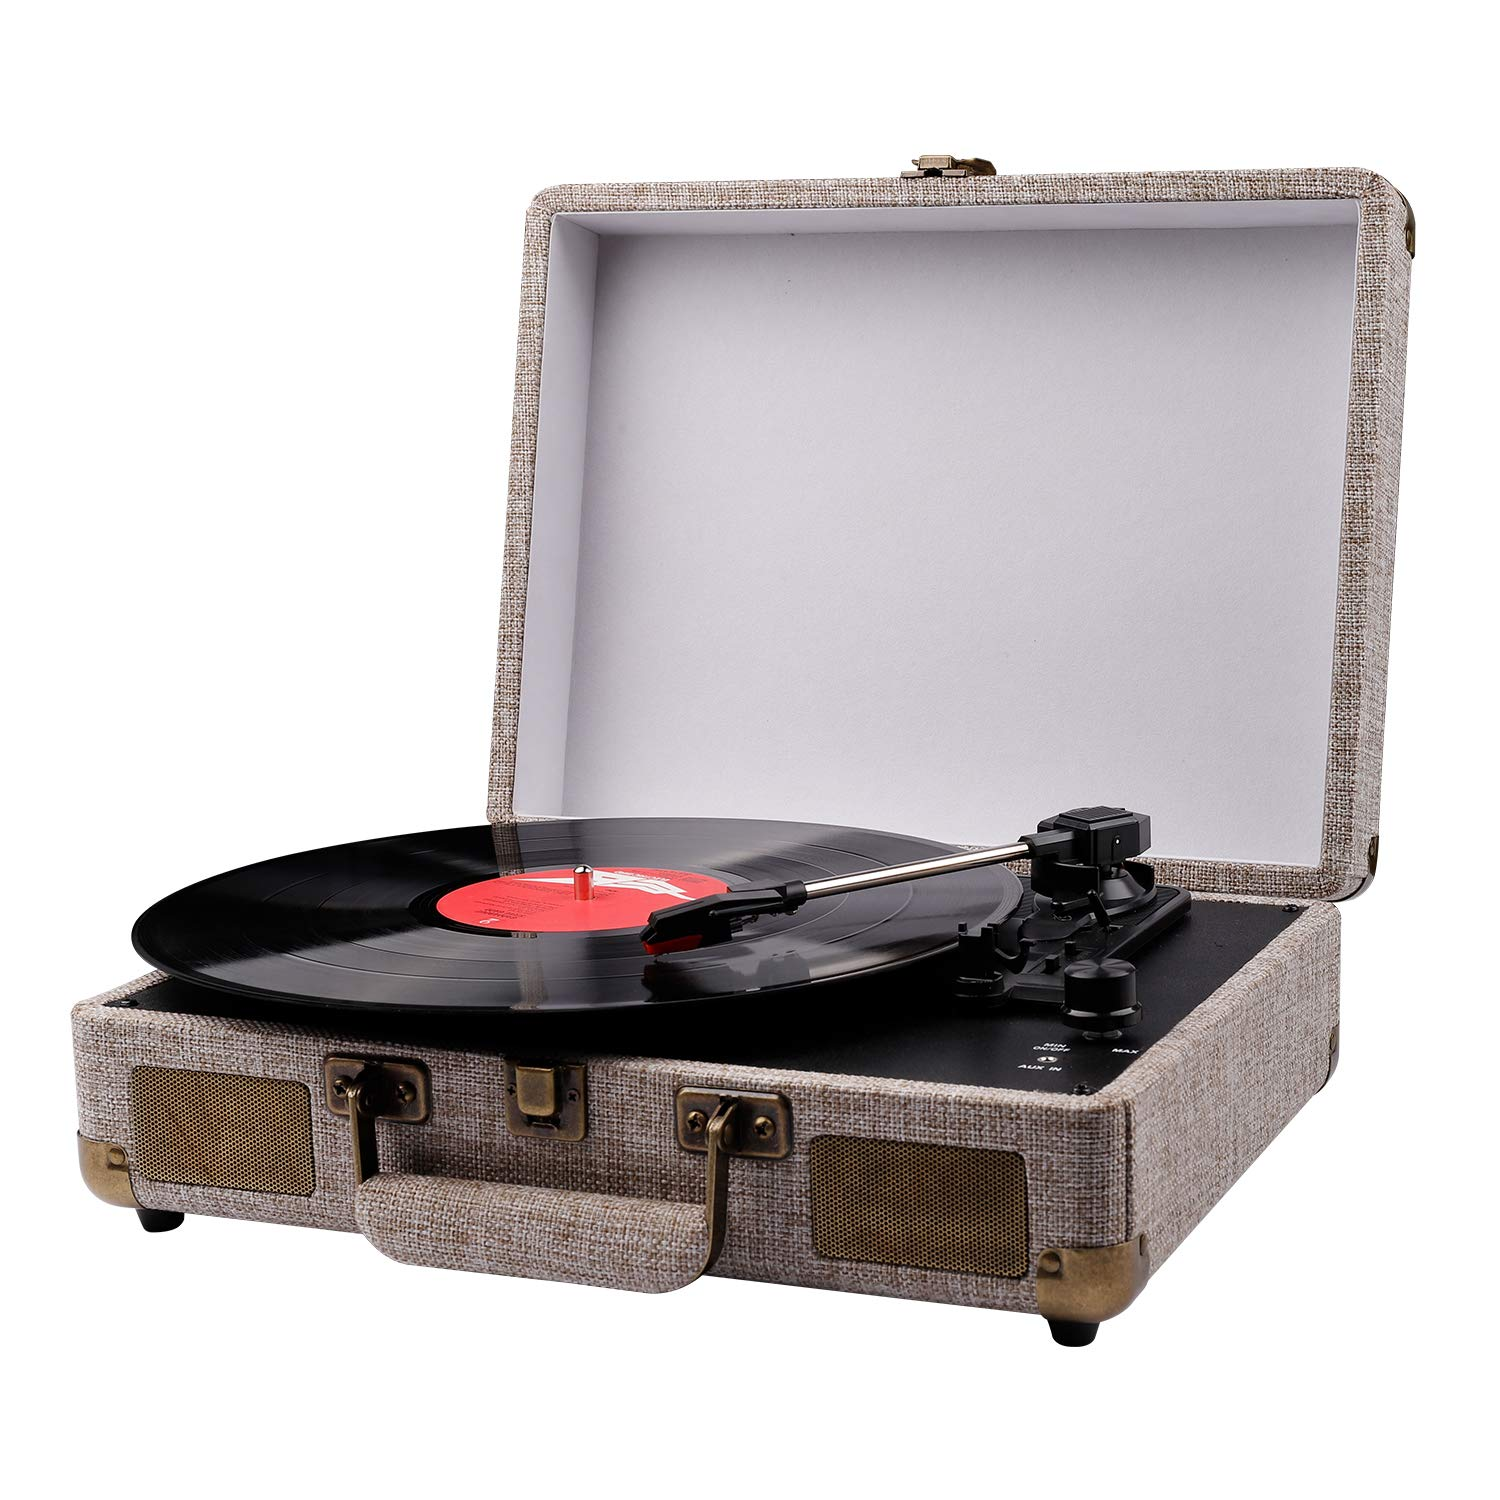 Vinyl Record Player, Portable Suitcase Turntables for Vinyl Records, Belt-Drive 3-Speed Vintage Lp Record Player by GRC